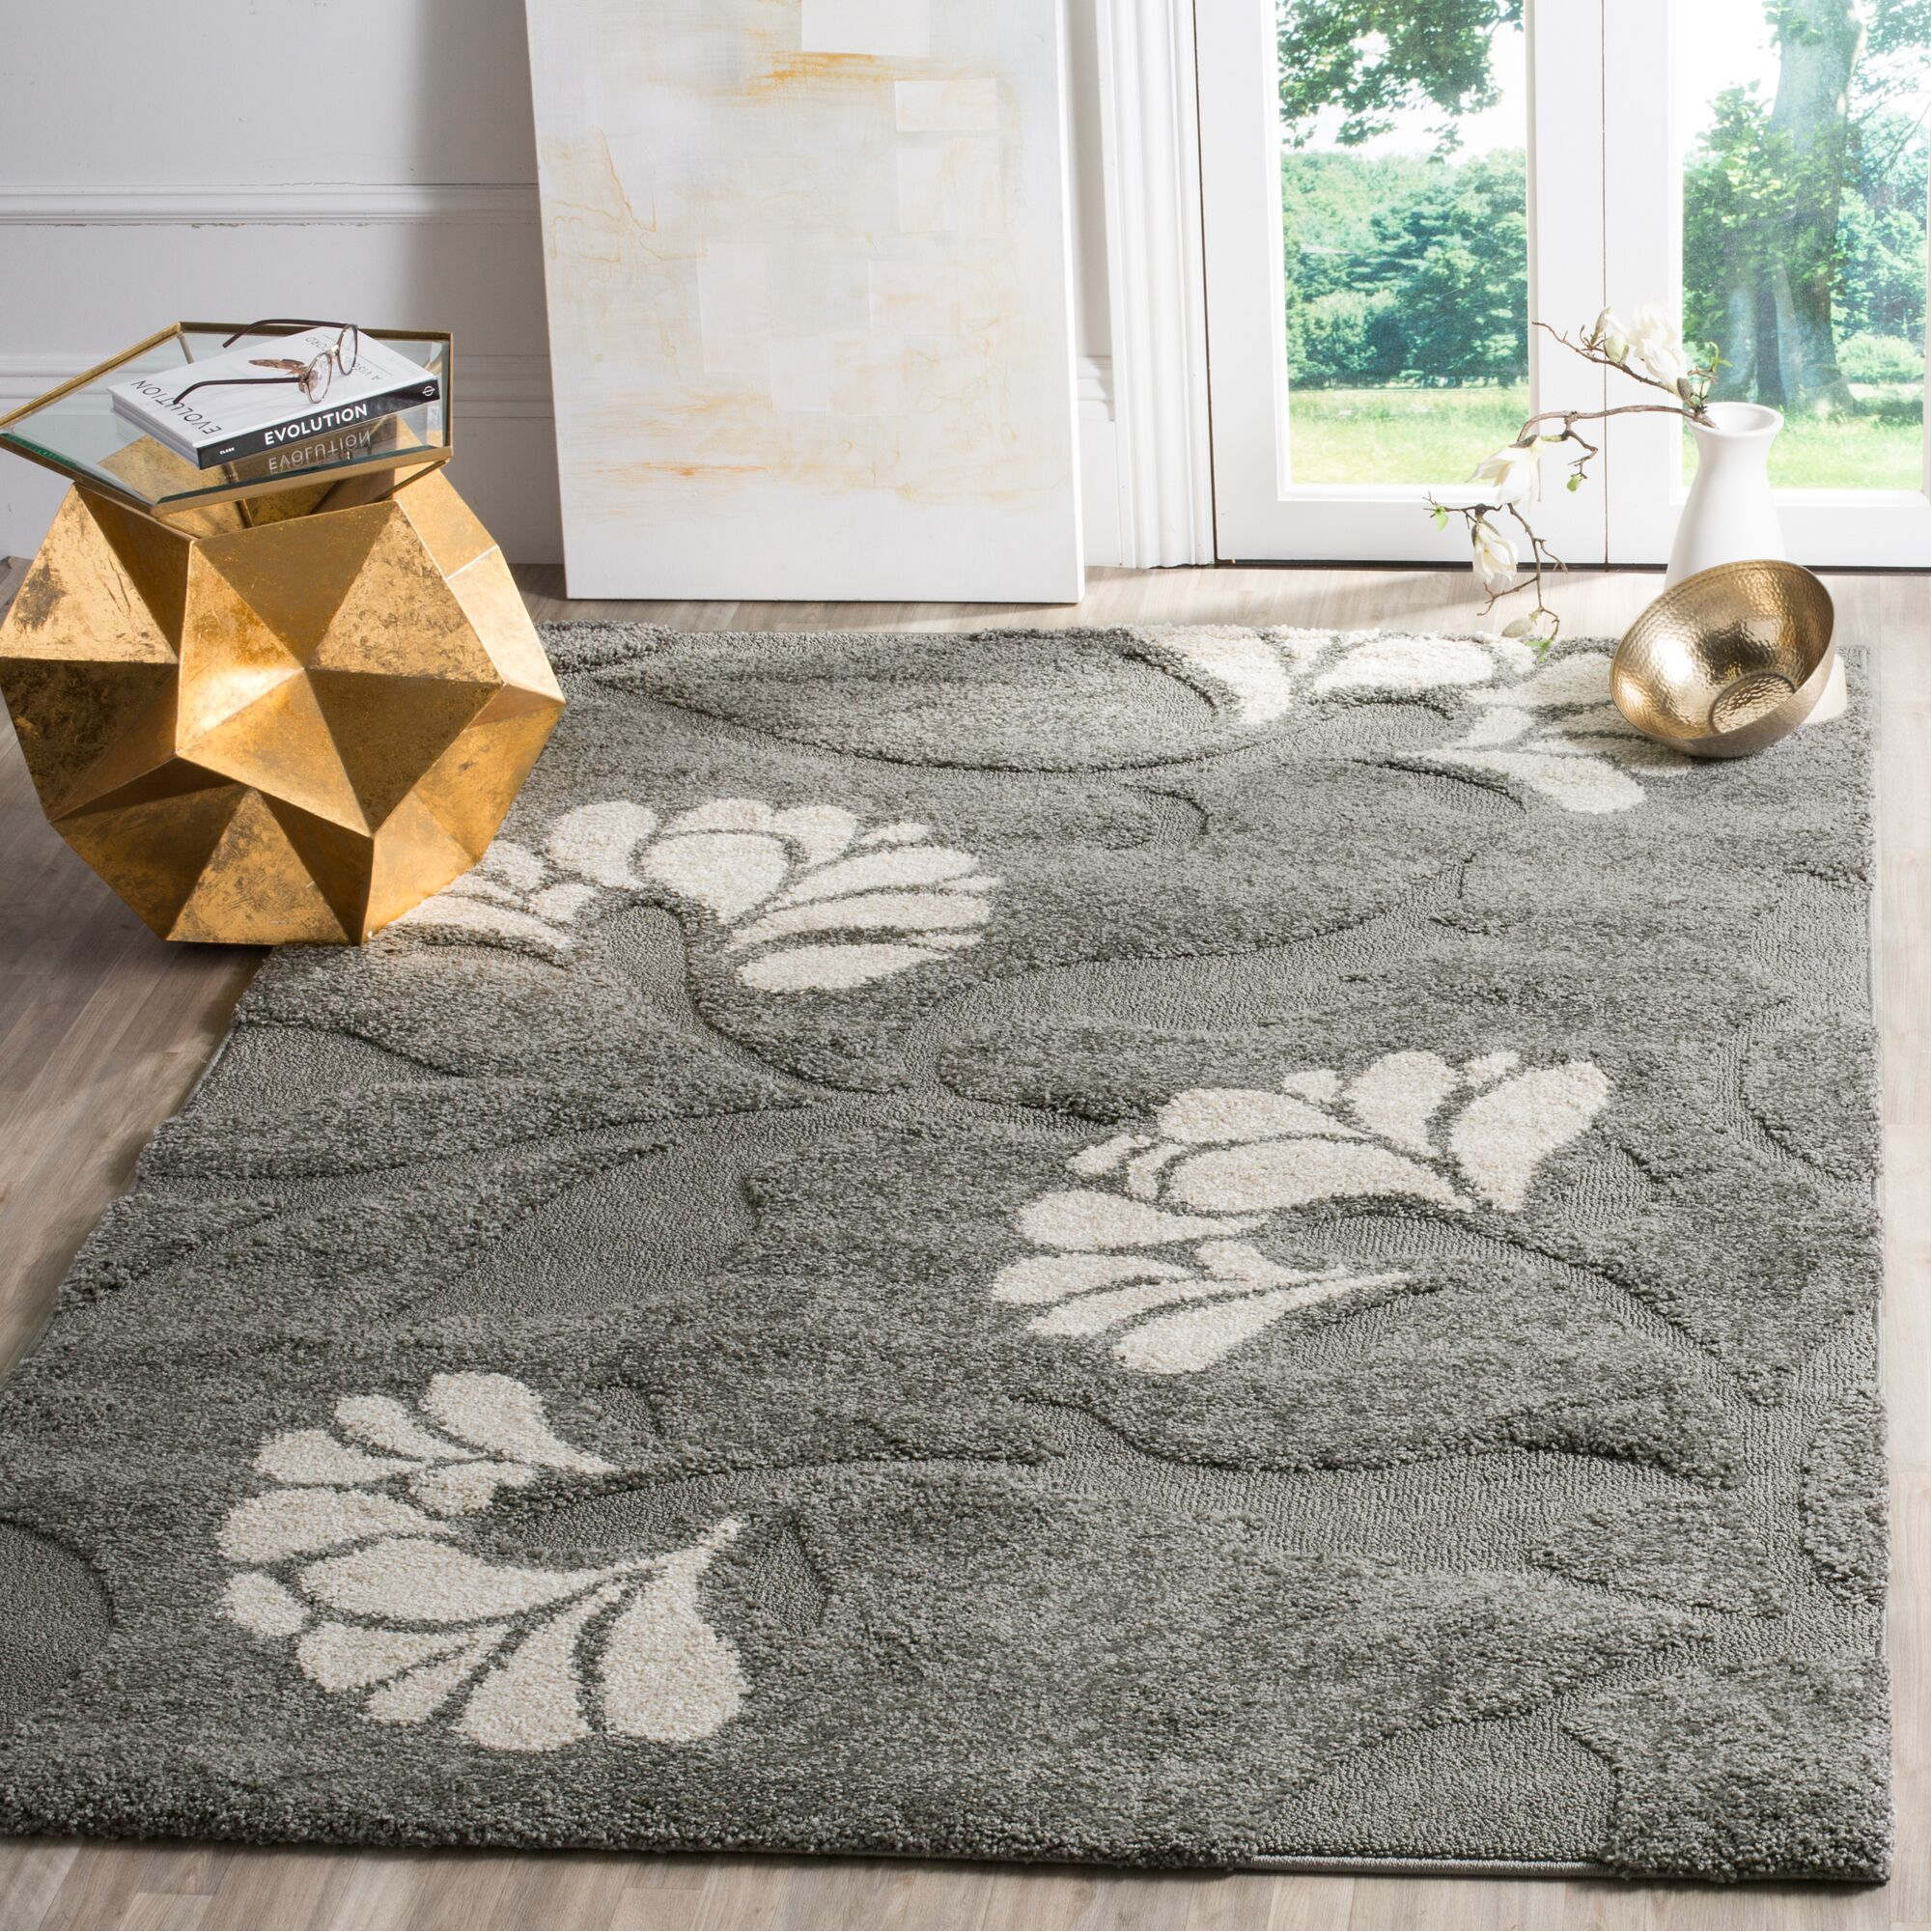 Marybell Gray/Beige Area Rug Rug Size: Rectangle 5'3